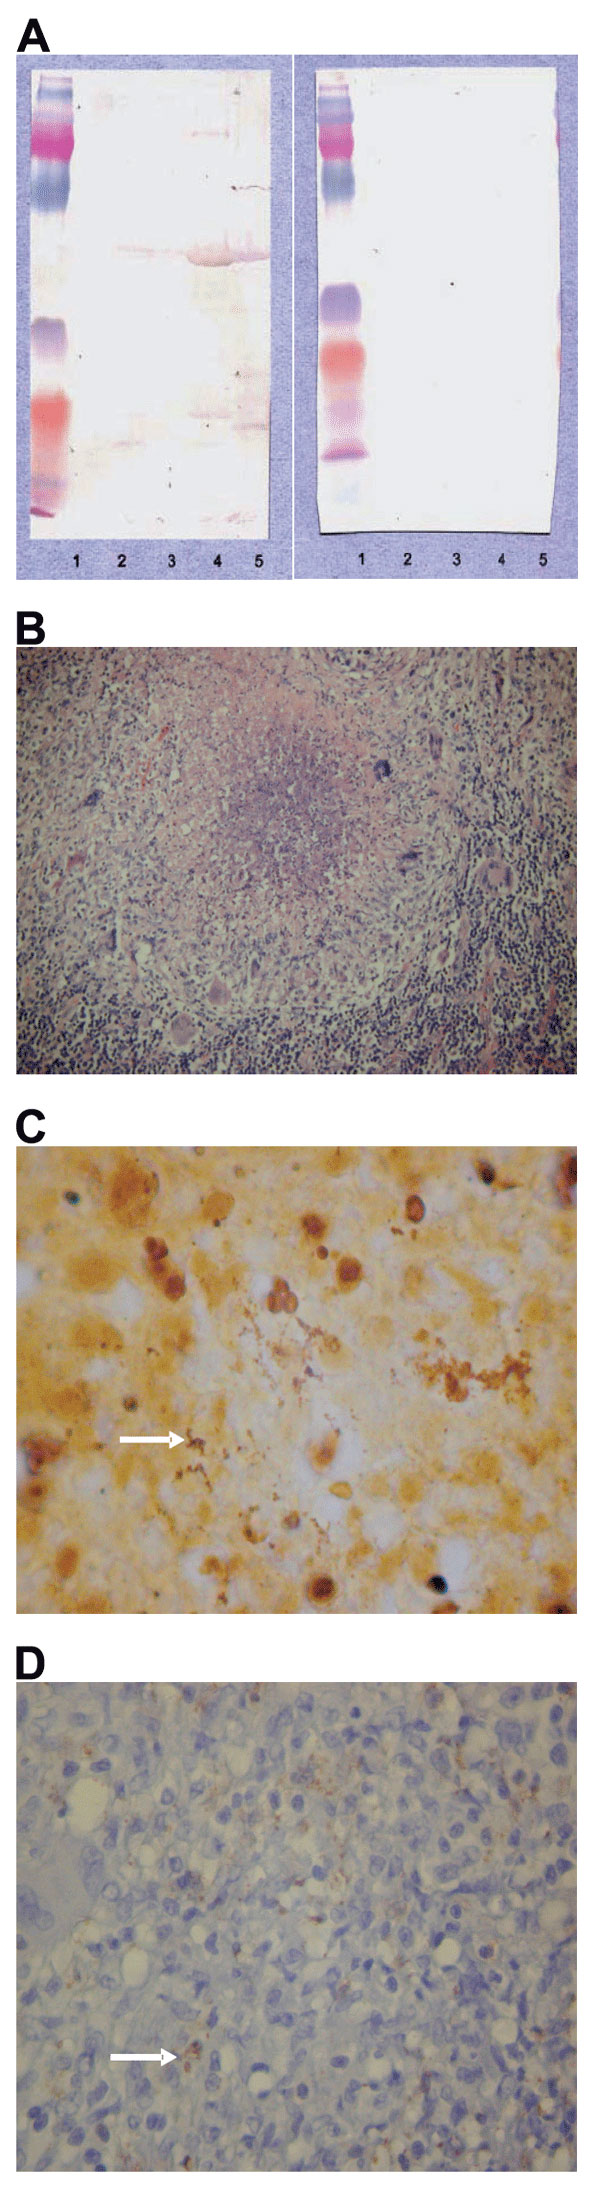 A) Western blotting analysis of lymph node specimen from the patient before 1) and after 2) cross-adsorption with Bartonella alsatica. Lane 1, B. quintana; lane 2, B. henselae; lane 3, B. elizabethae; lane 4, B. vinsonii subsp. berkhoffii; lane 5, B. alsatica. B) Characteristic histologic change in the lymph node with B. alsatica infection. Shown is an inflammatory granulomatous process with central microabscess surrounded by a ring of macrophages and rare giant cells (hematoxylin and eosin stain, original magnification x100). C) Bacteria (arrow) in an abscess formation mixed with necrotic debris (Warthin-Starry silver stain, original magnification x1,000). D) Immunohistochemical detection of B. alsatica (arrow) in lymph node pulp with an extracellular distribution (polyclonal antibody and hematoxylin counterstain, original magnification x400).